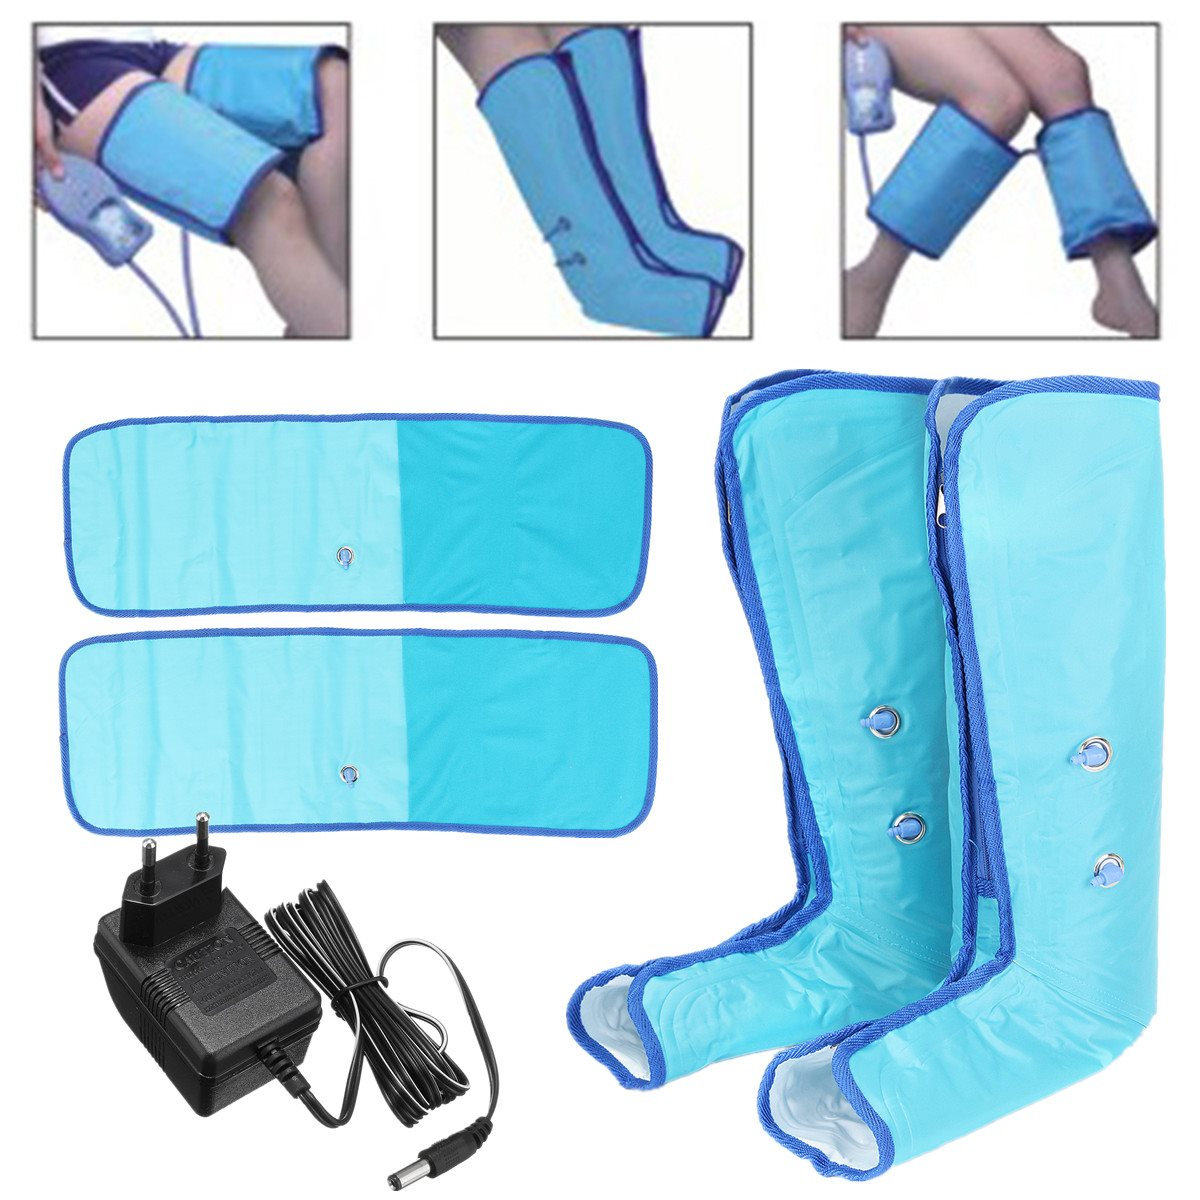 Air Press Leg Foot Massager Home Air Compression Circulation Ankle Therapy Massager Relief Tired Relieve Muscle Foot Care Tool electric antistress therapy rollers shiatsu kneading foot legs arms massager vibrator foot massage machine foot care device hot